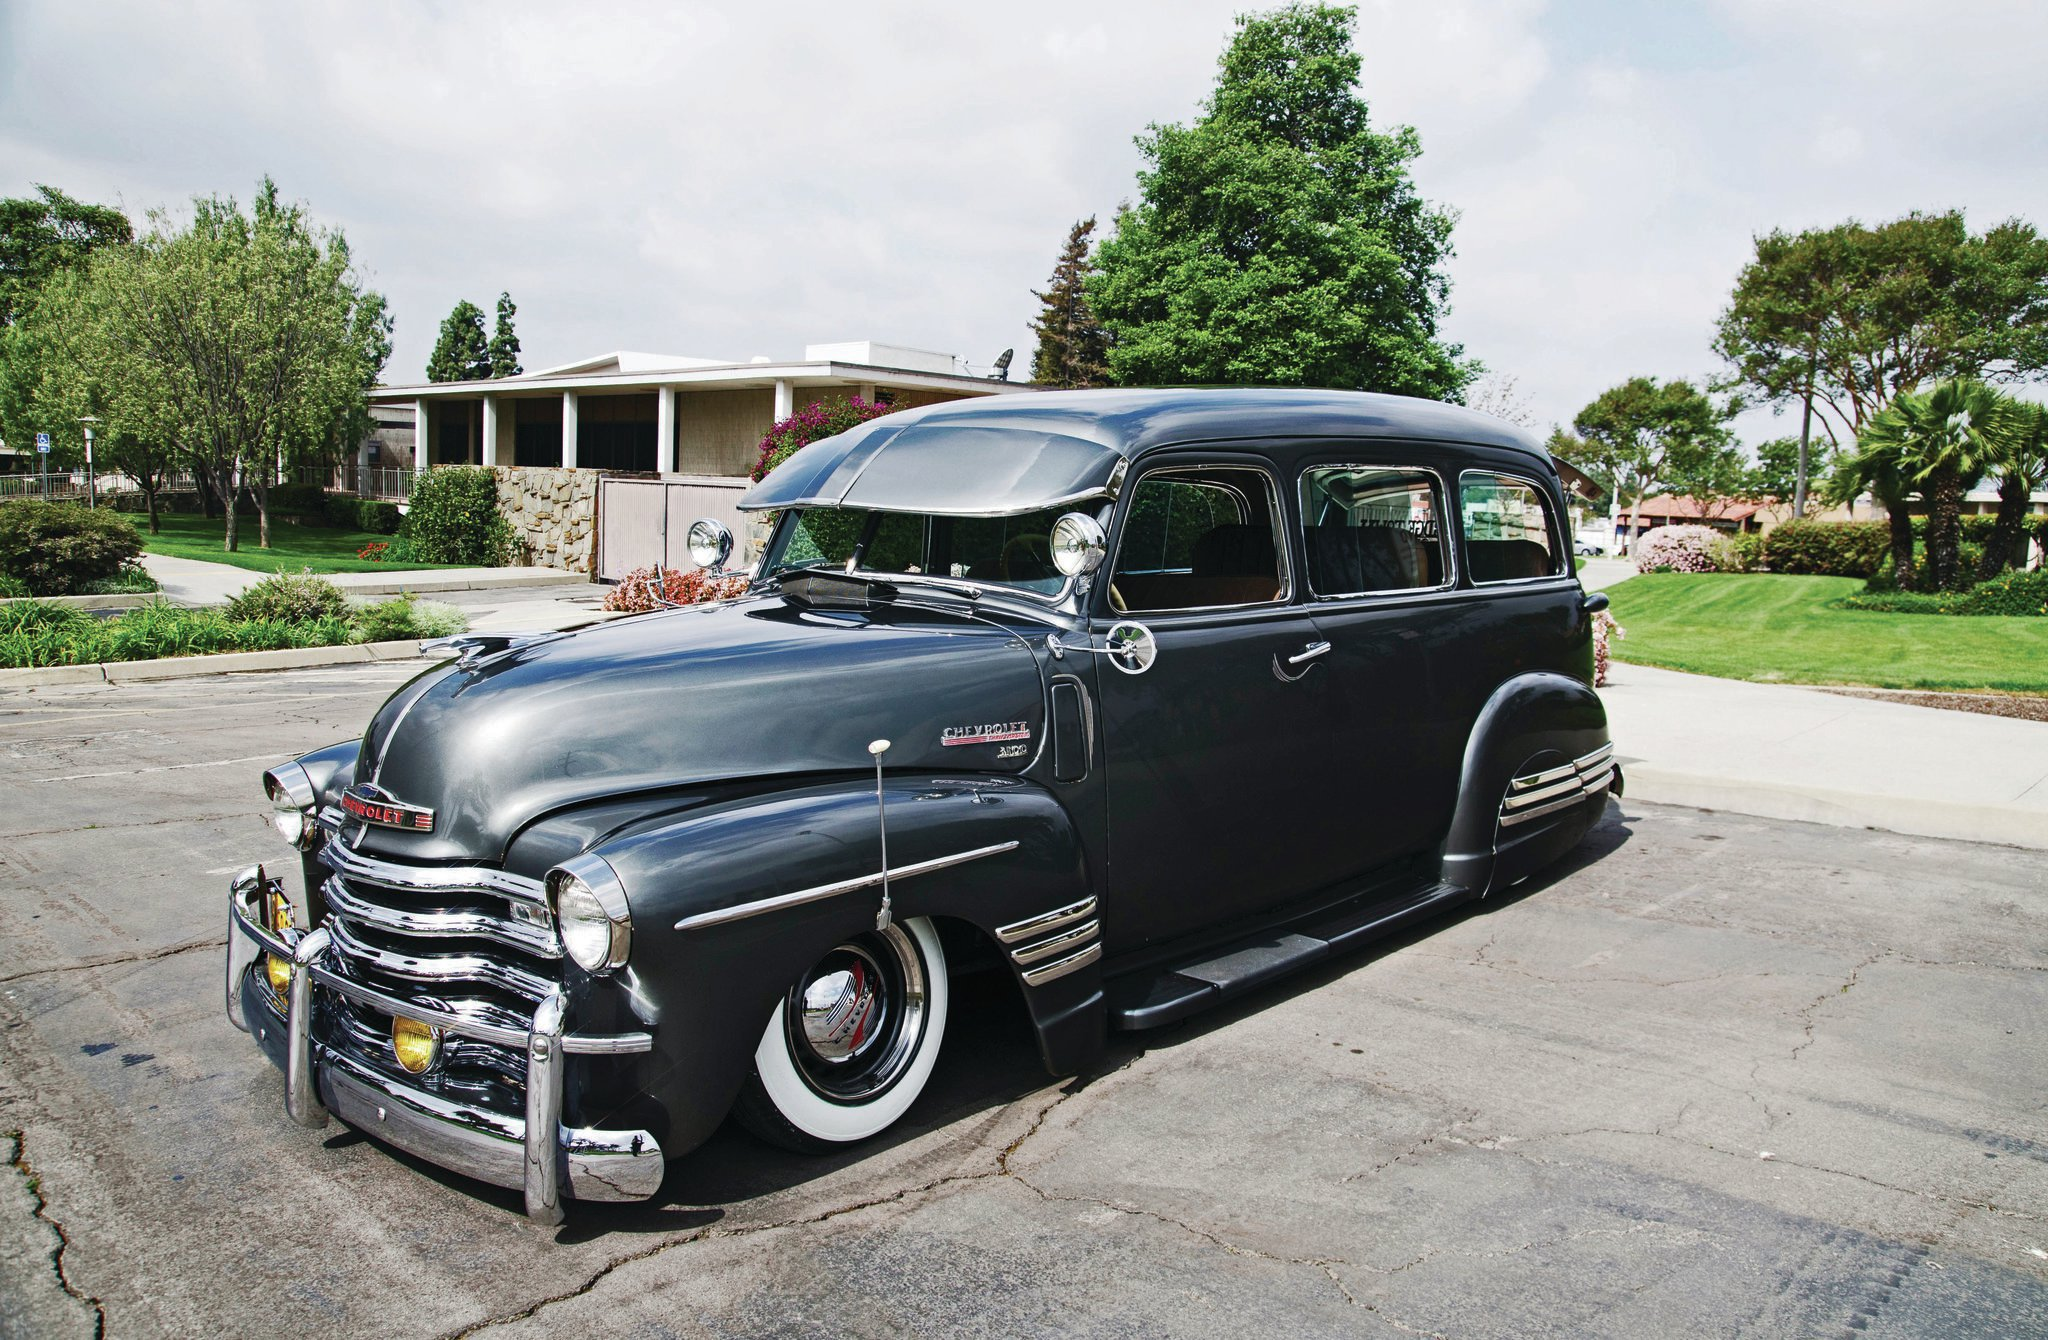 1948 Chevrolet Suburban - Bomb Threat